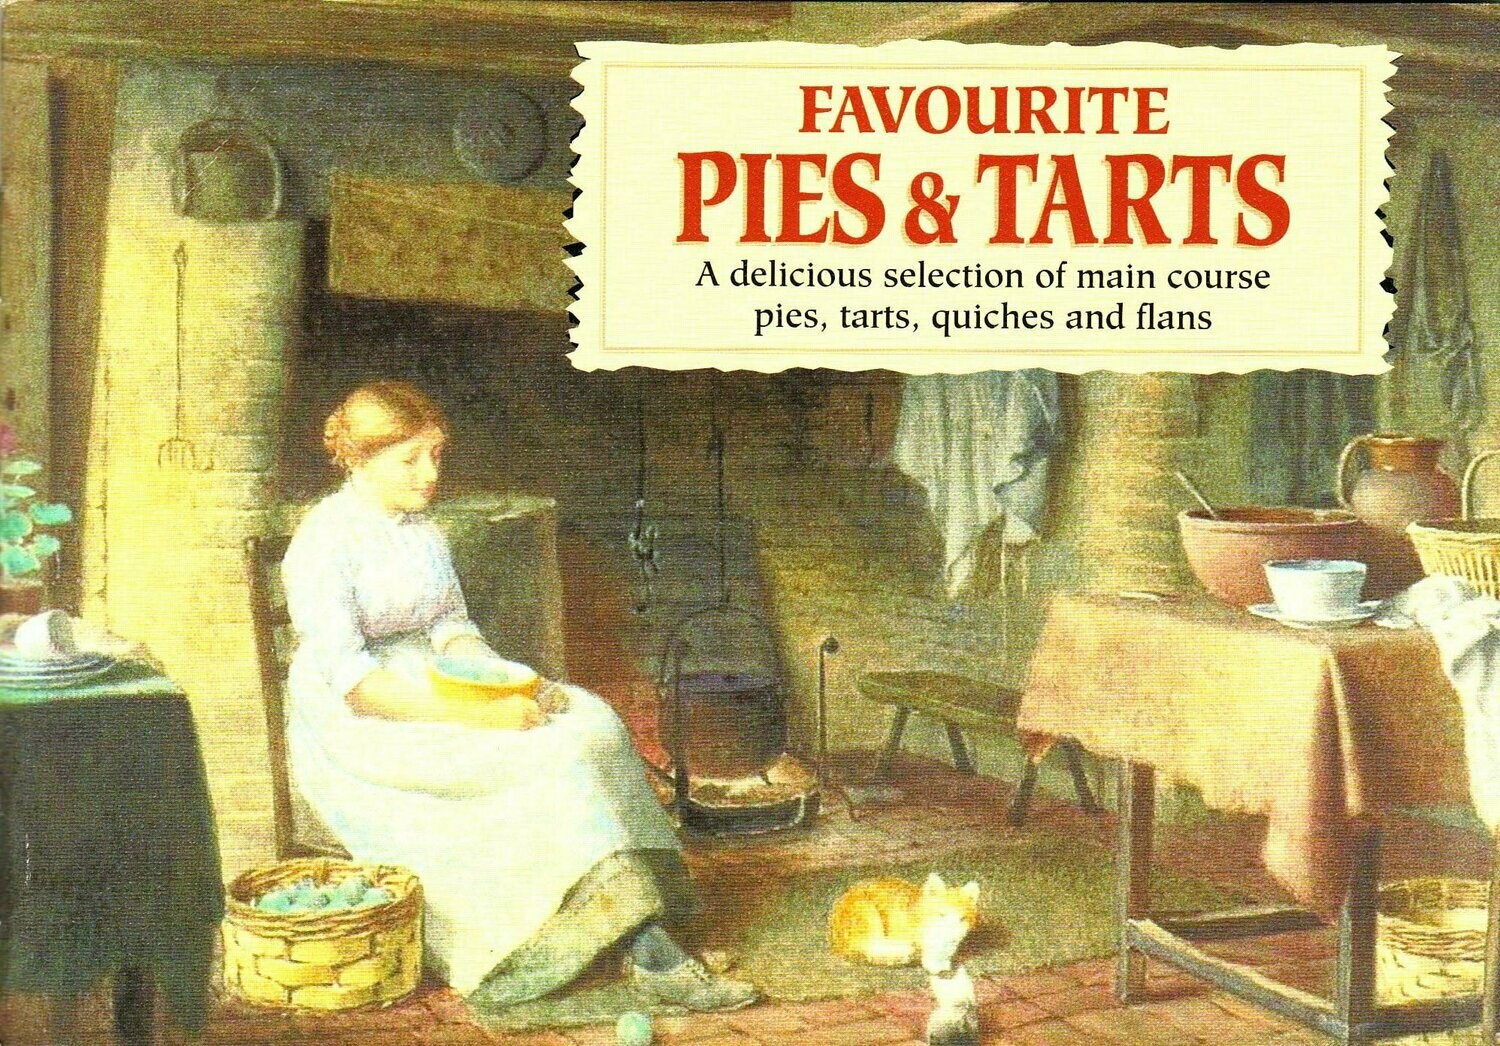 Favourite Pies and Tarts: A Delicious Selection of Main Course Pies, Tarts, Quiches & Flans